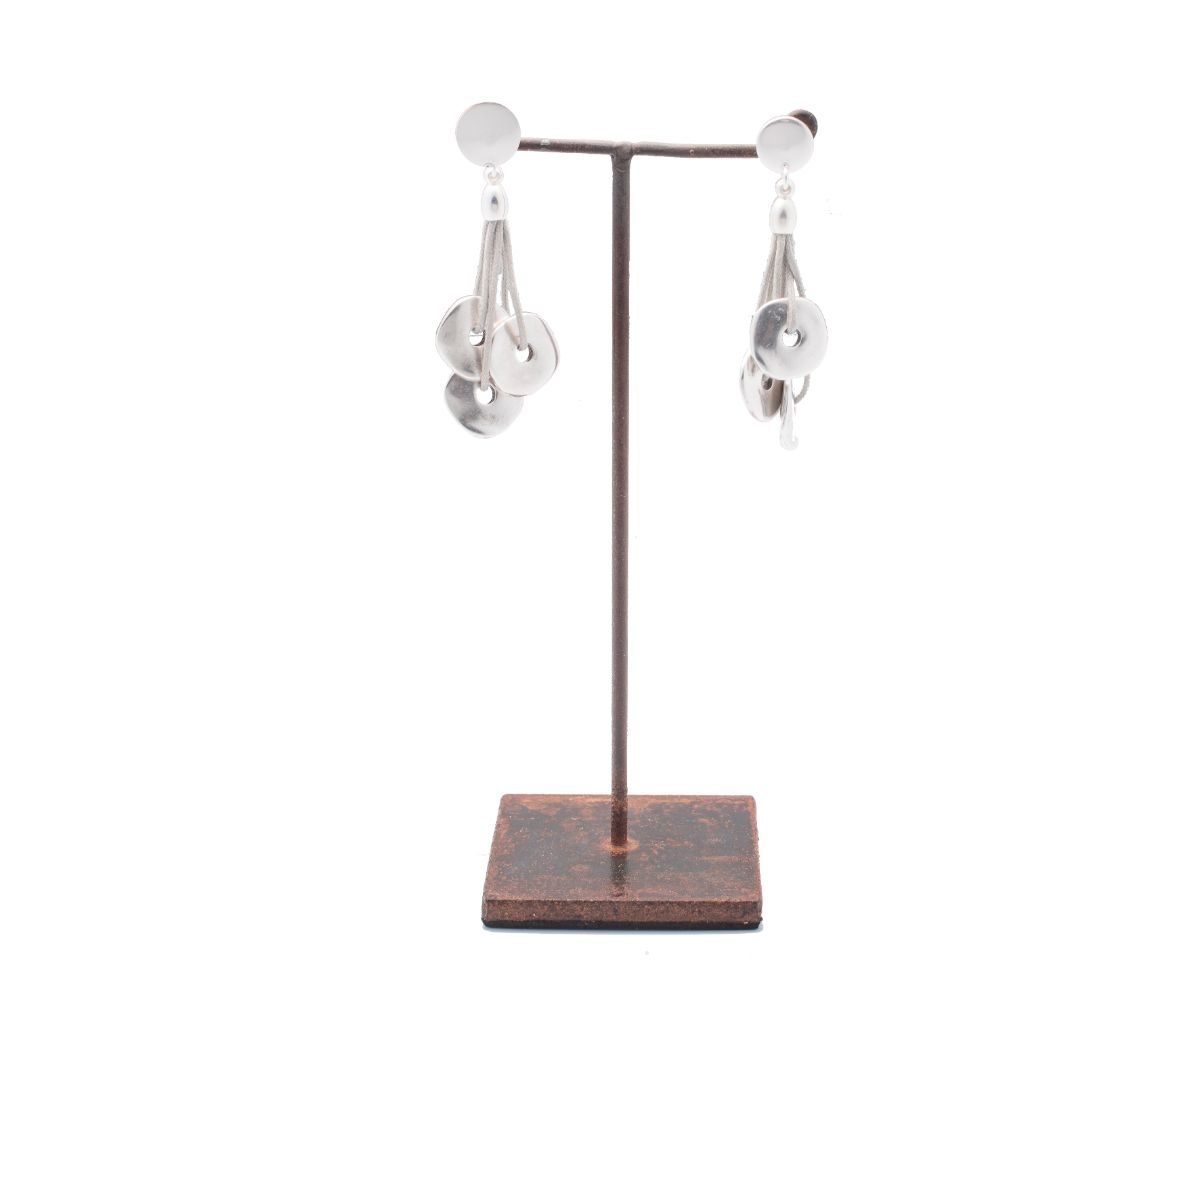 Empúries earring with cotton and three silver plated metal pieces. Snap closure